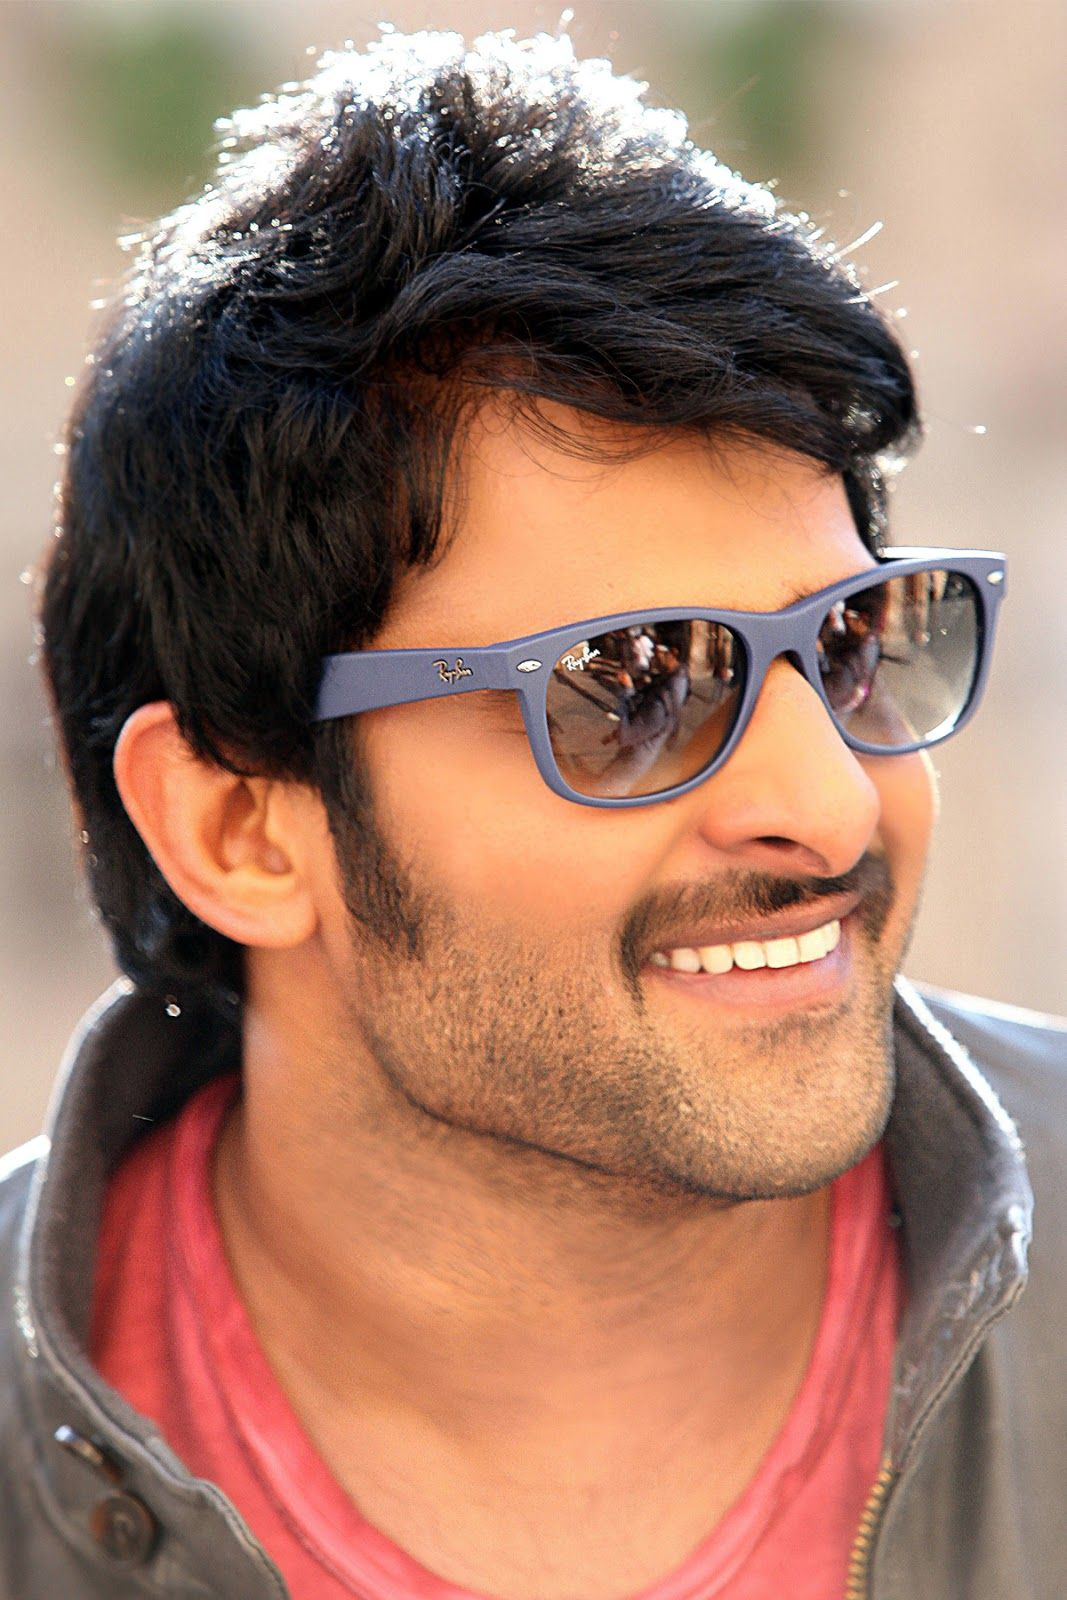 prabhas hd wallpapers 1080p free download | prabhas | pinterest | hd